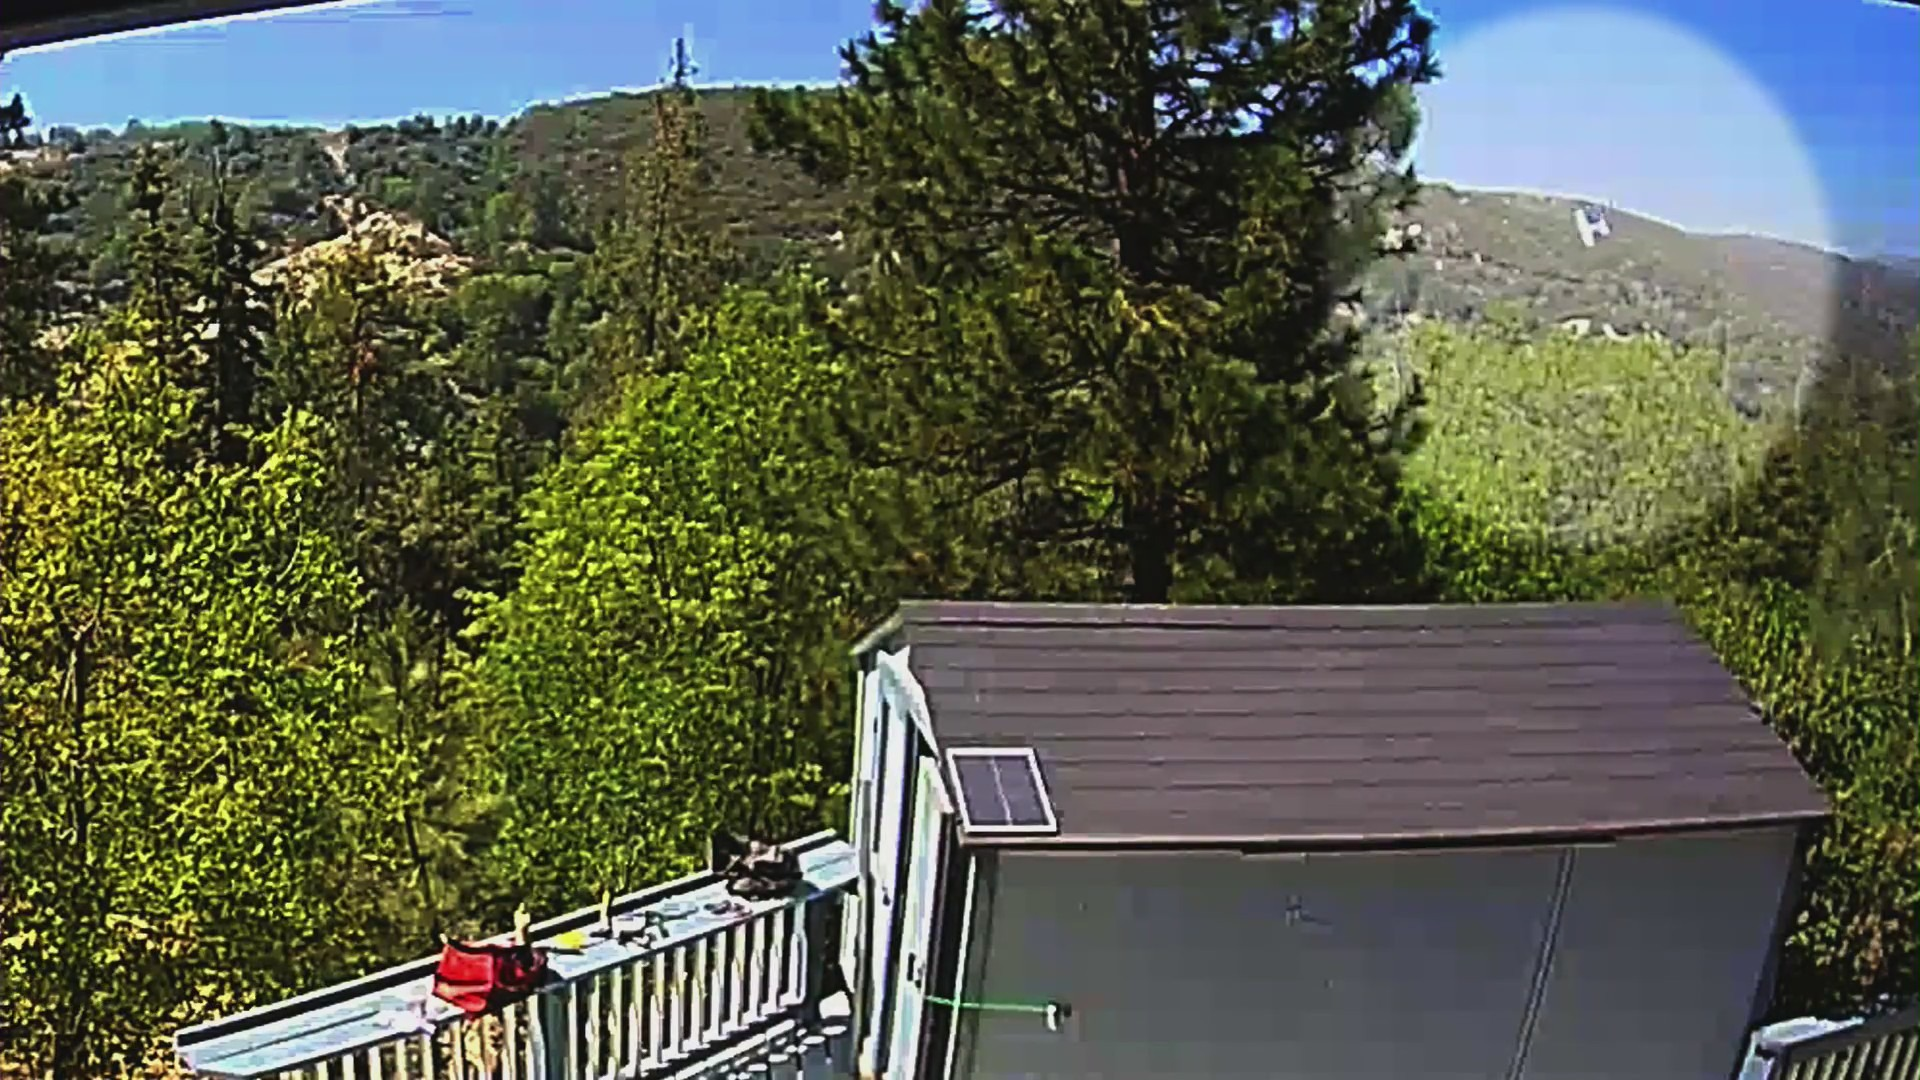 Ring doorbell video shows a small plane descending near Lake Arrowhead on May 15, 2021. (Jeff Eade)